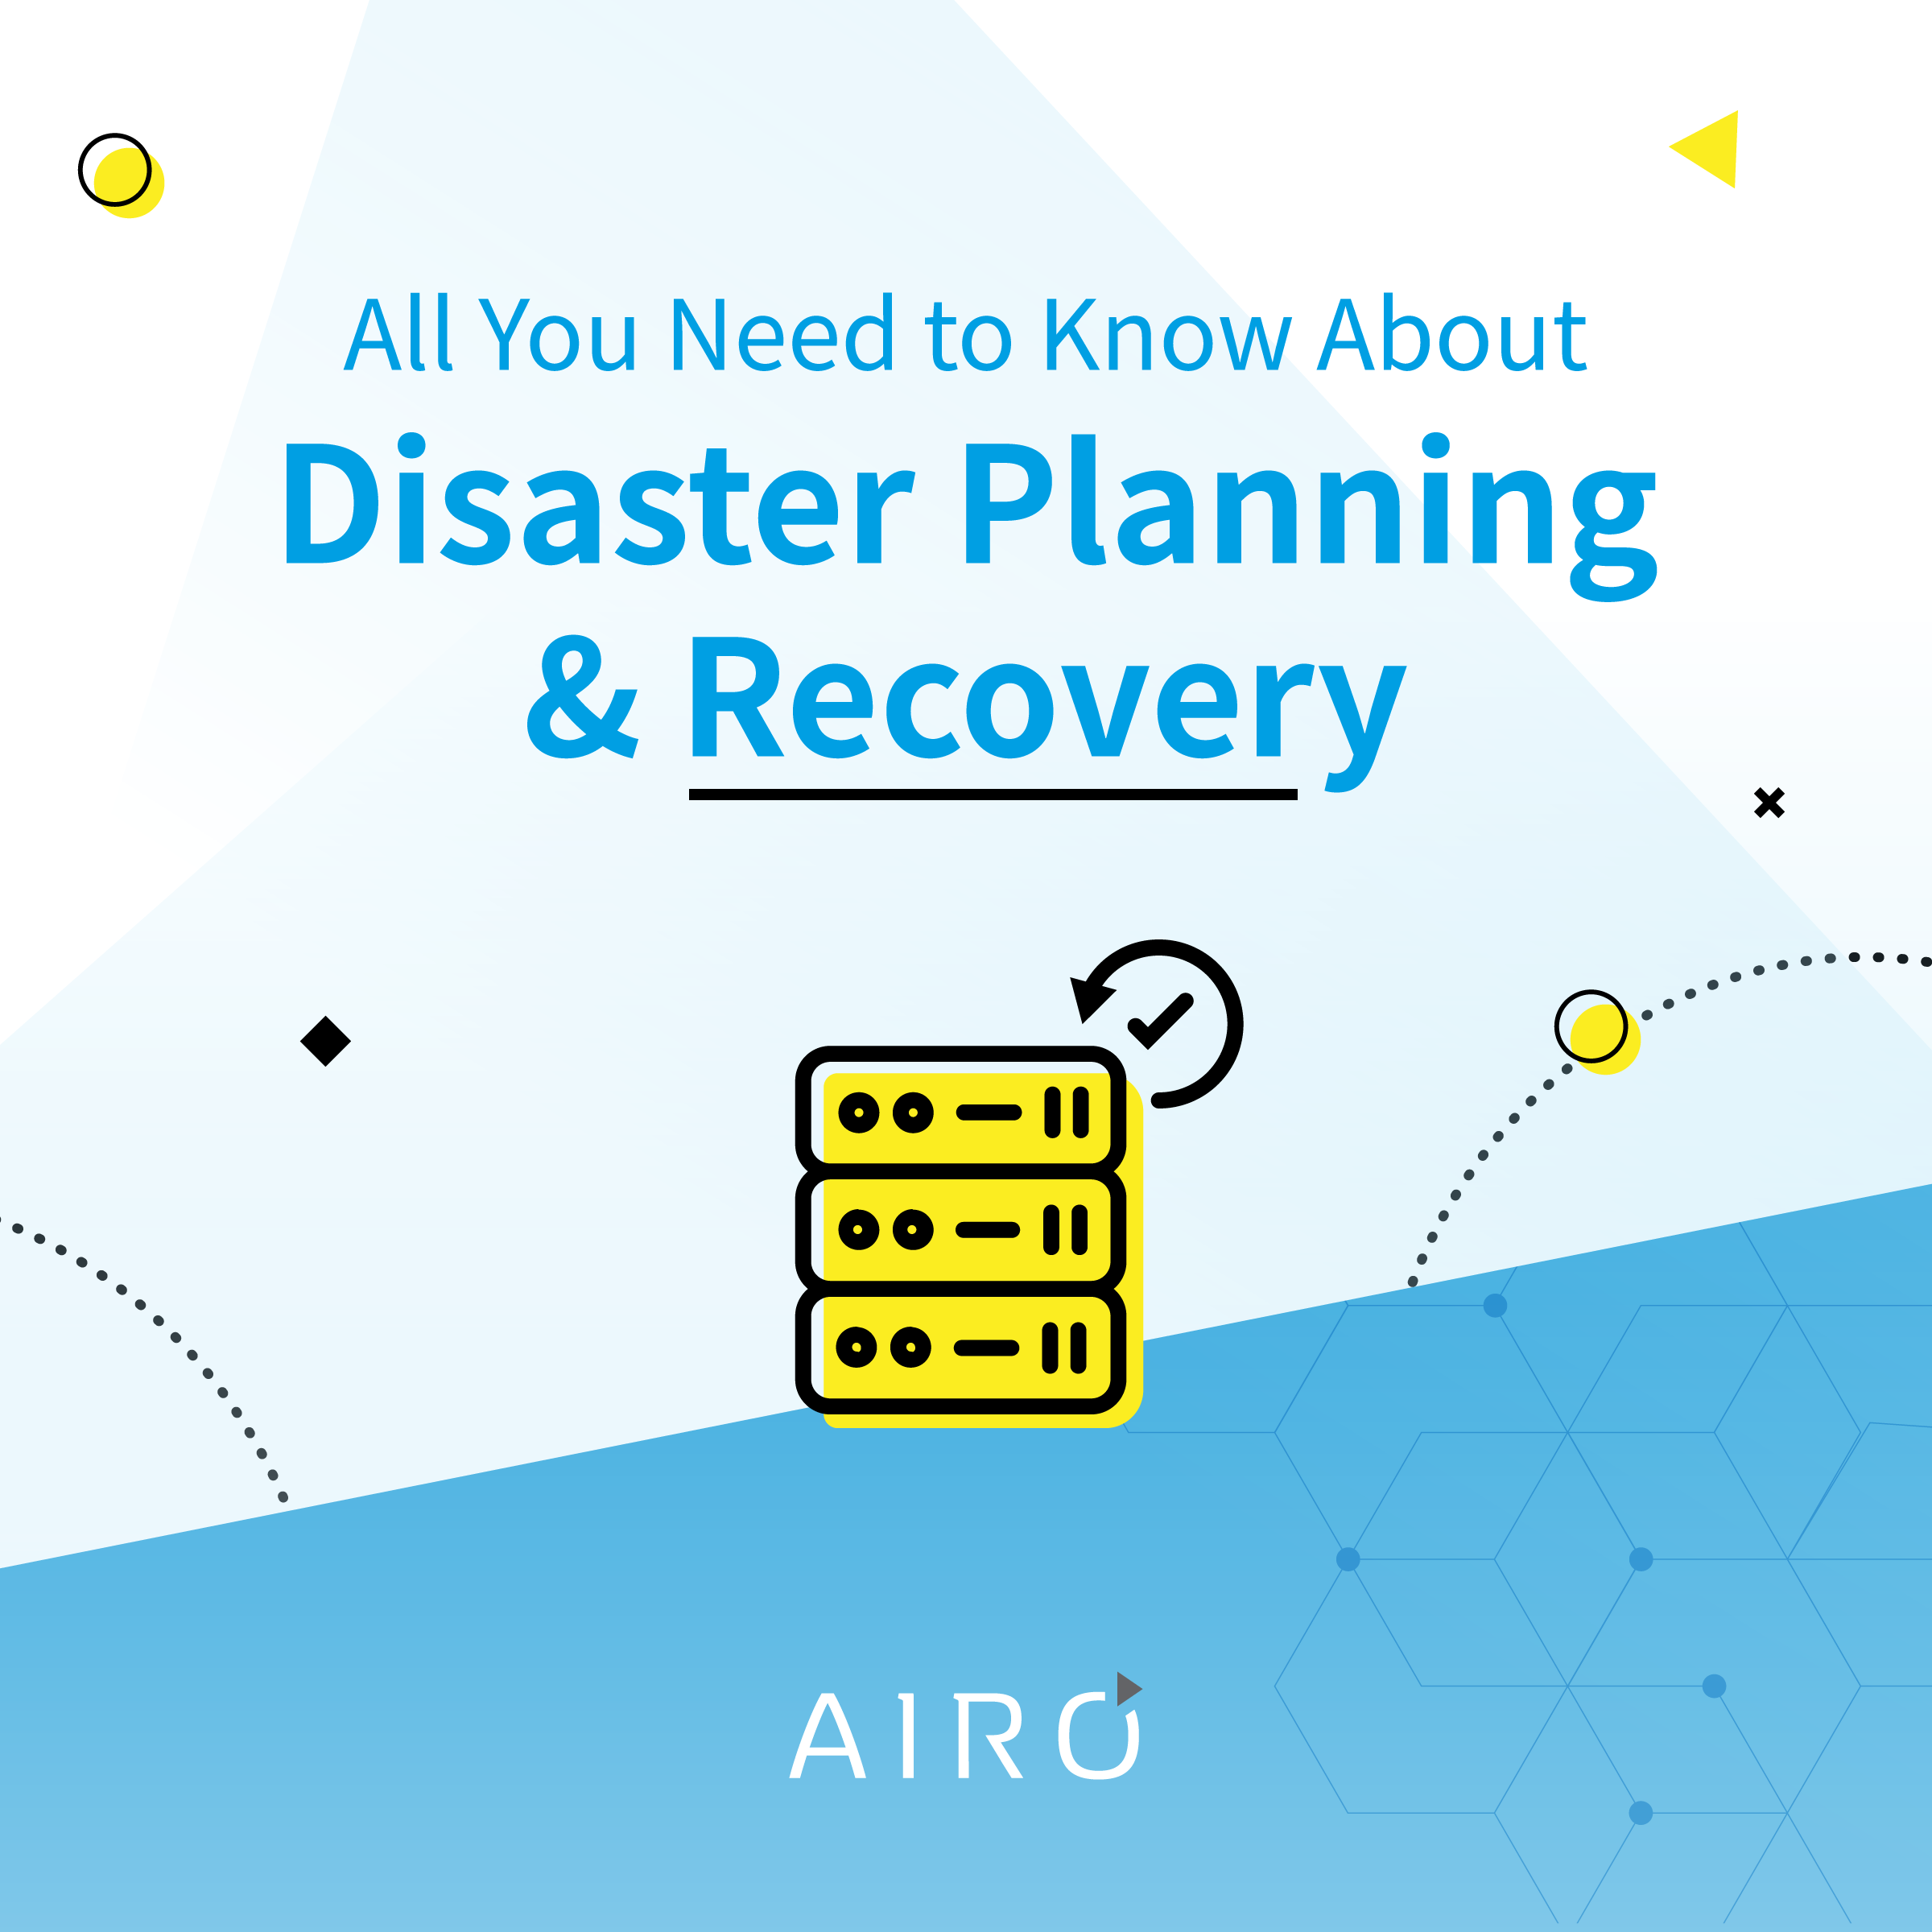 Everything you need to know about Disaster Planning and Recovery